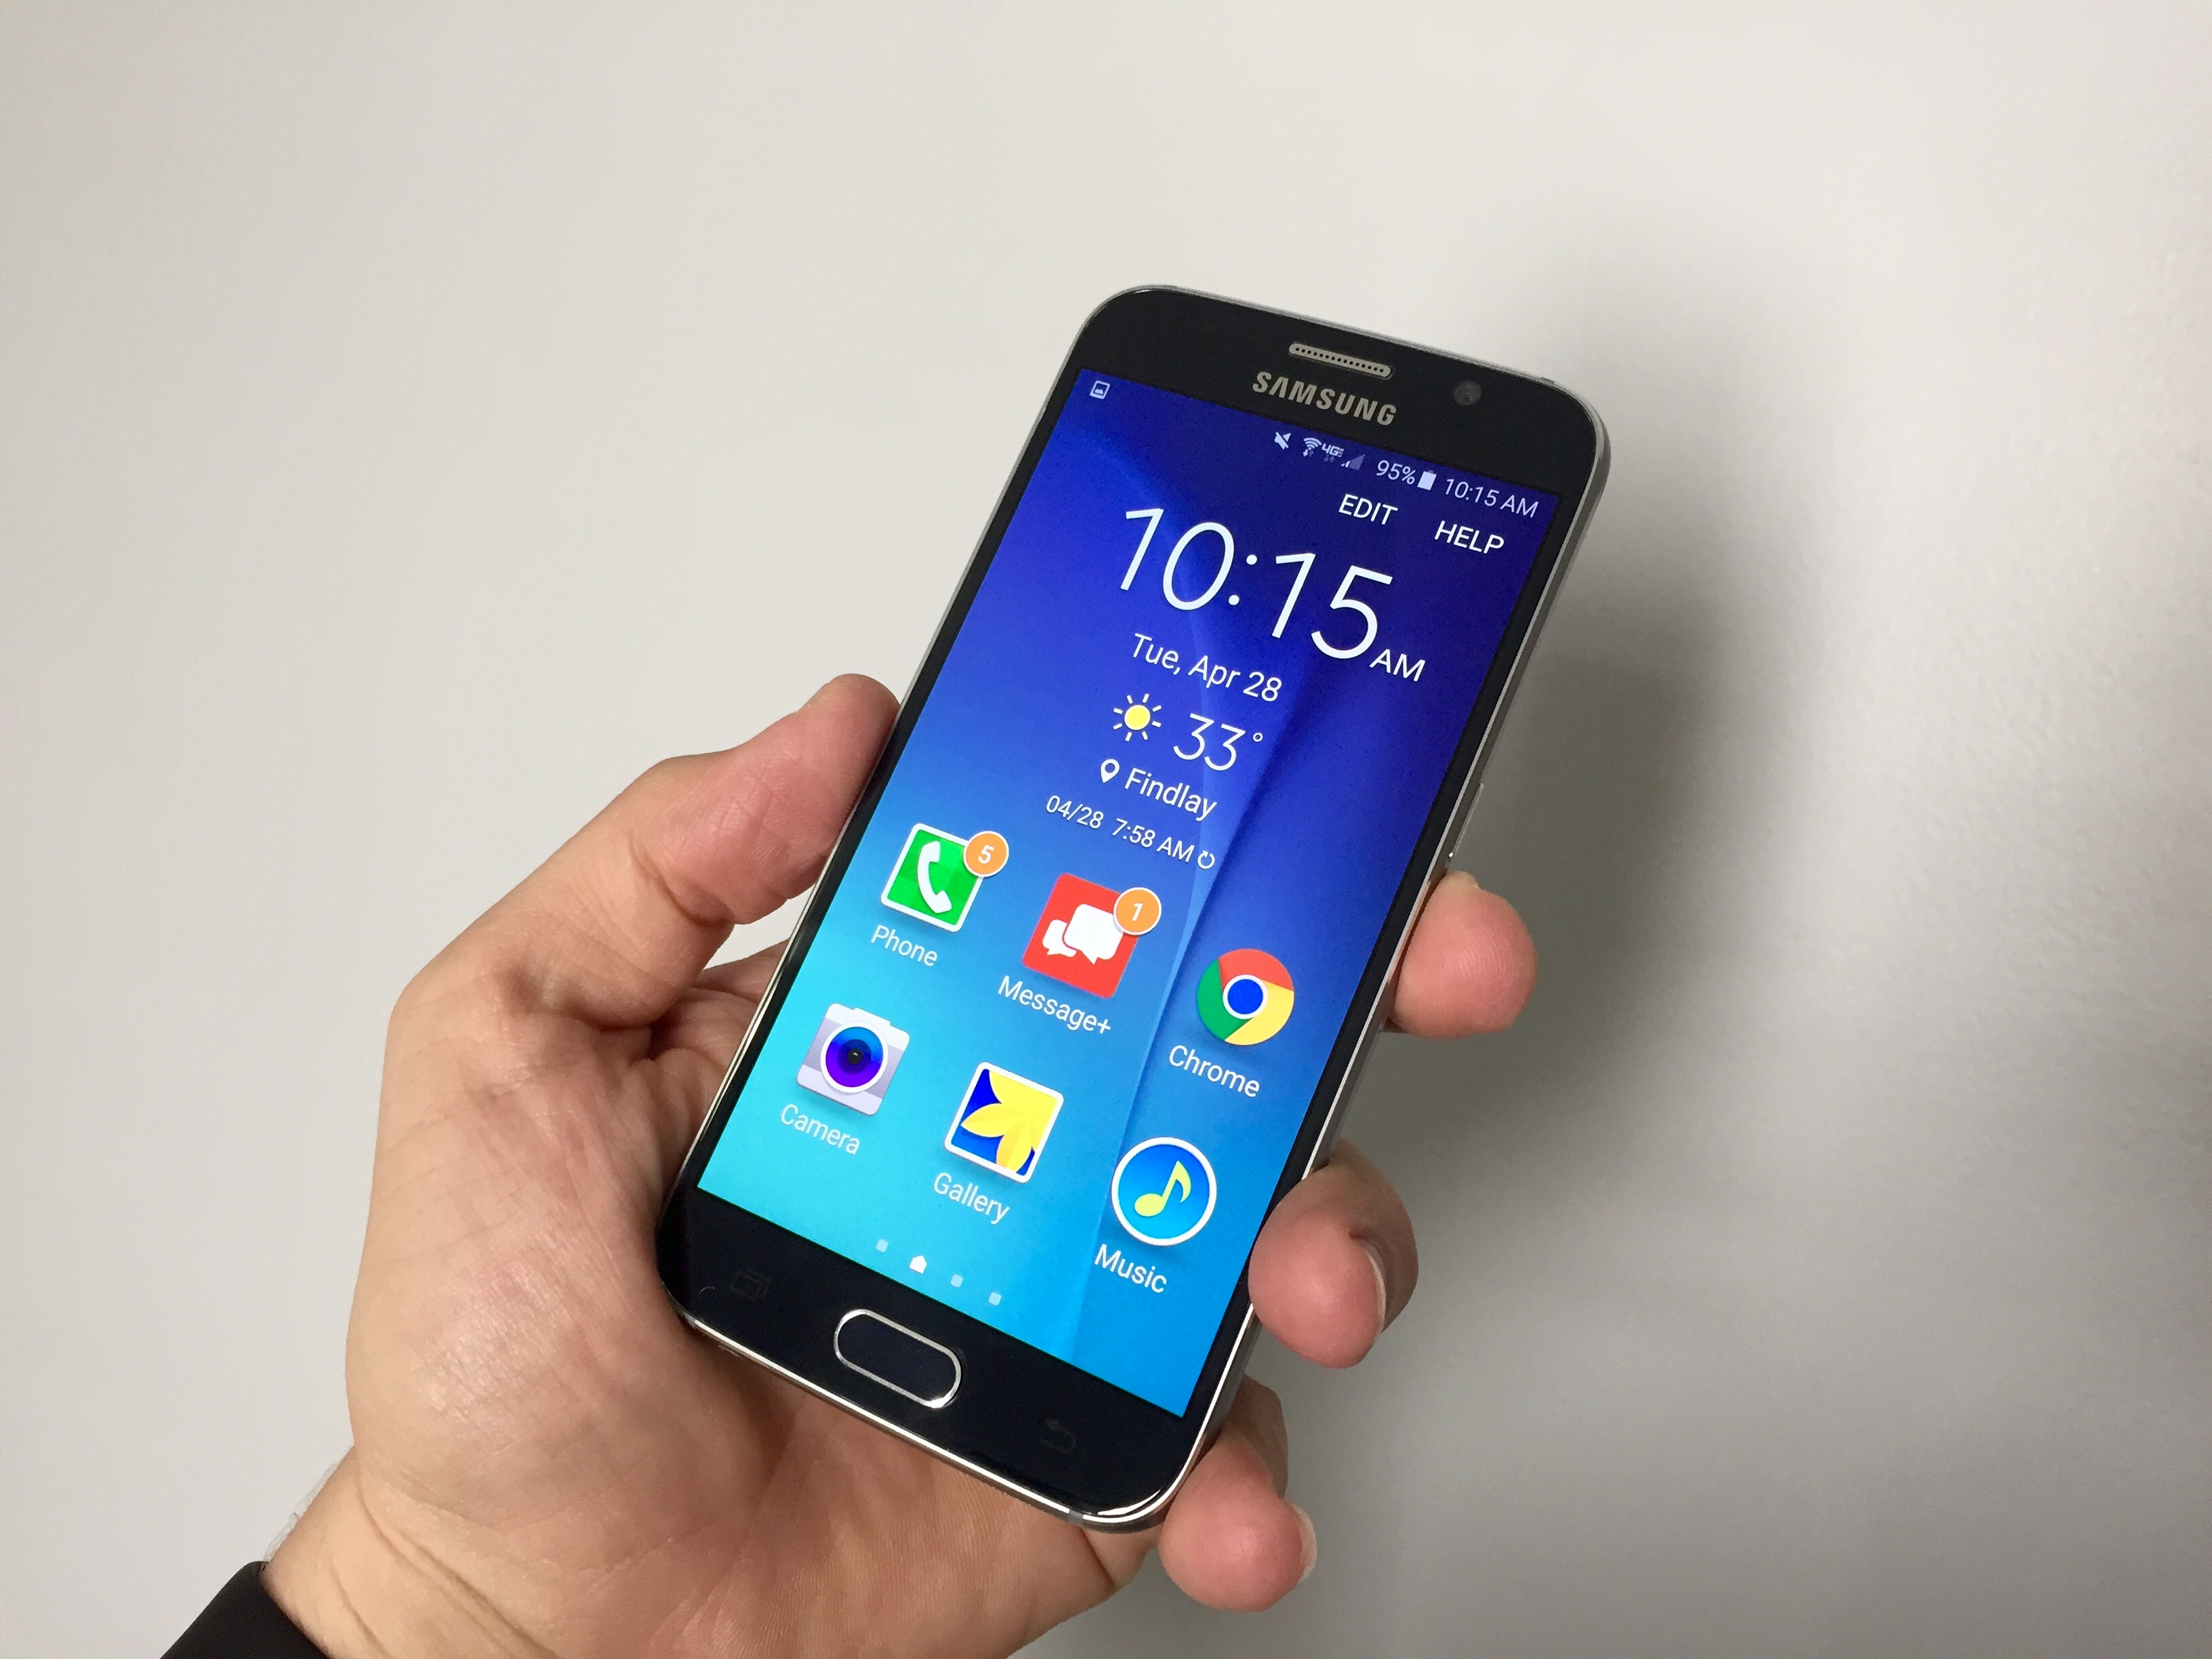 Learn how to use the Galaxy S6 Easy Mode for larger icons, simpler options and easier use.